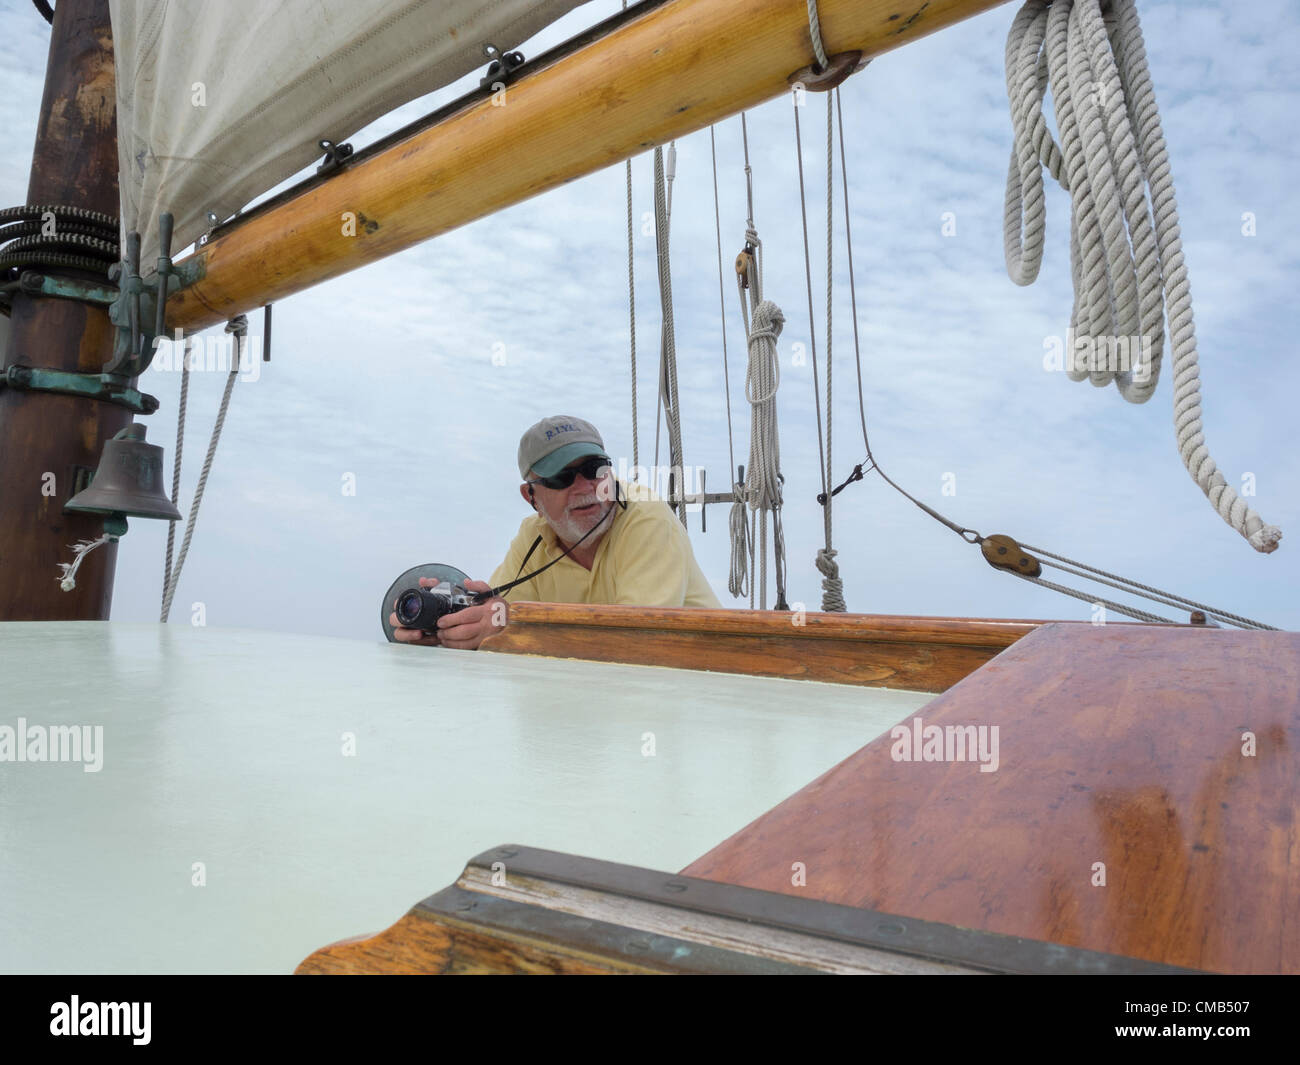 Roger Sherman aboard the tall ship schooner Tyrone during the Parade of Sail, Day 2 of OpSail Connecticut 2012. - Stock Image